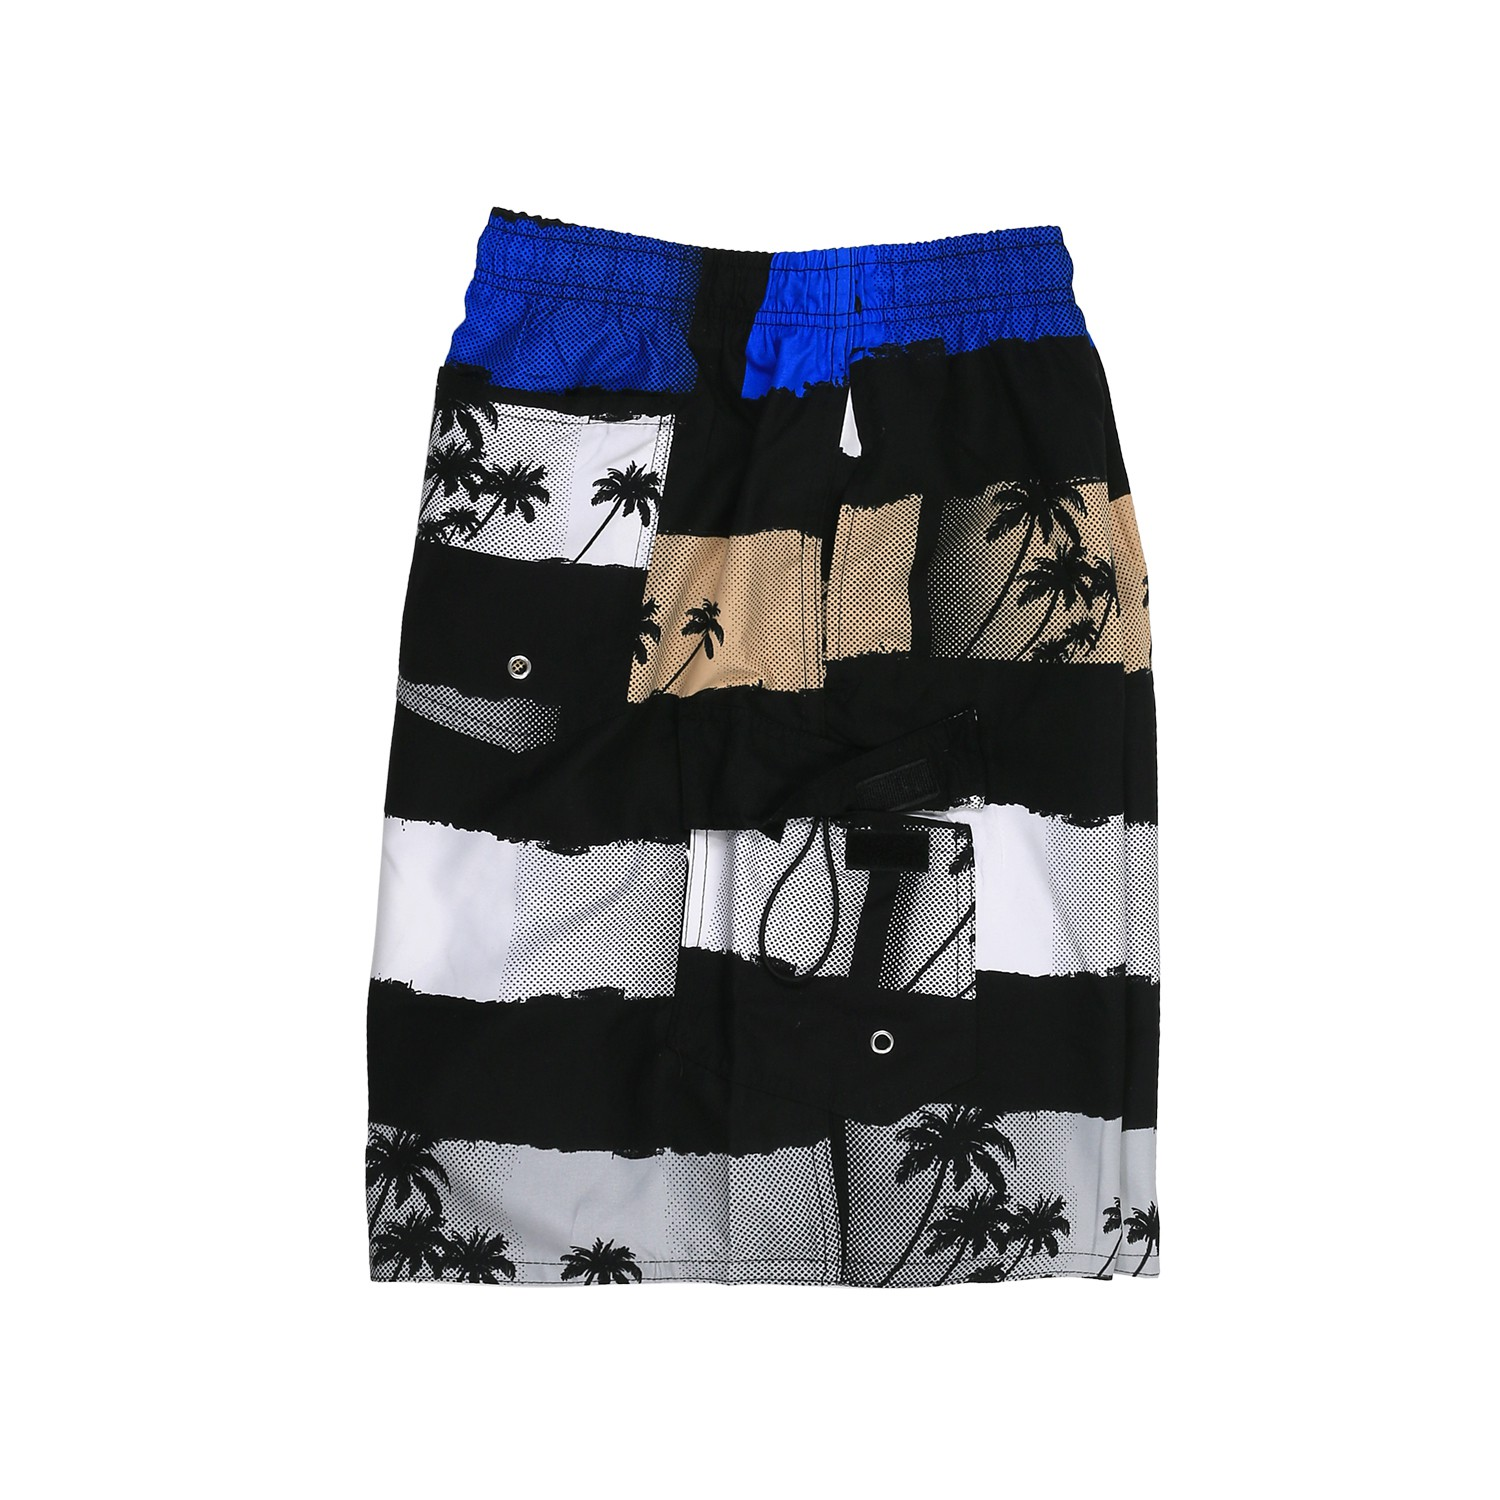 Detail Image to Swimming Trunks by Adamo, black/beige/blue, in plus size up to 8XL